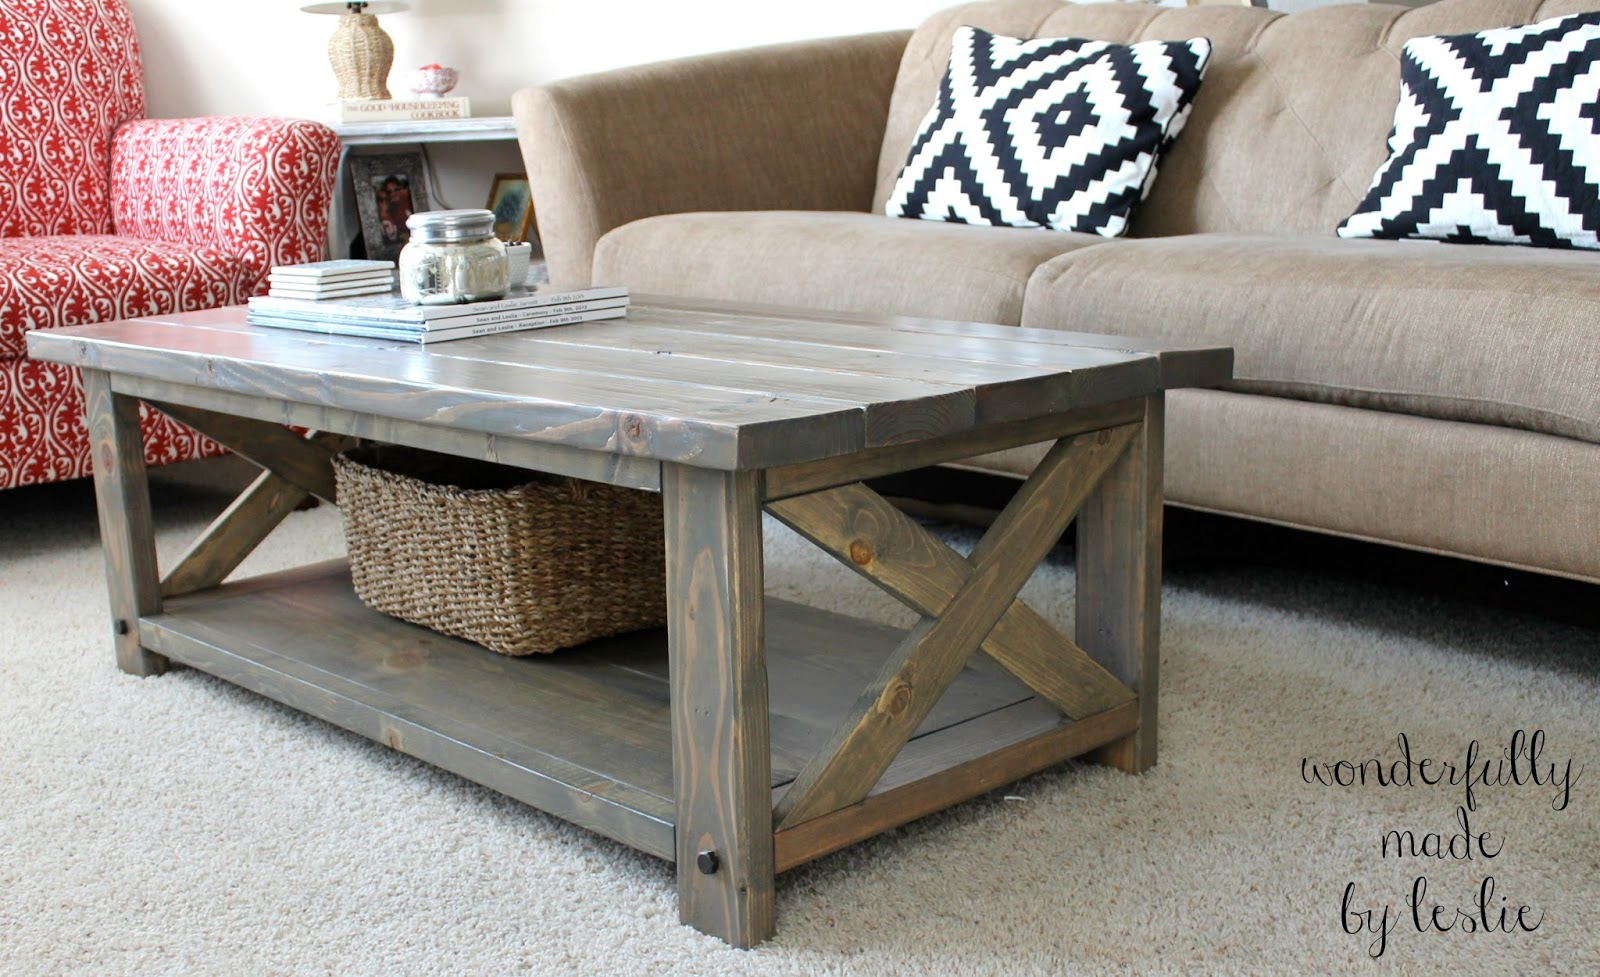 Coffee Table Designs ~ Wonderfully made finished diy coffee table